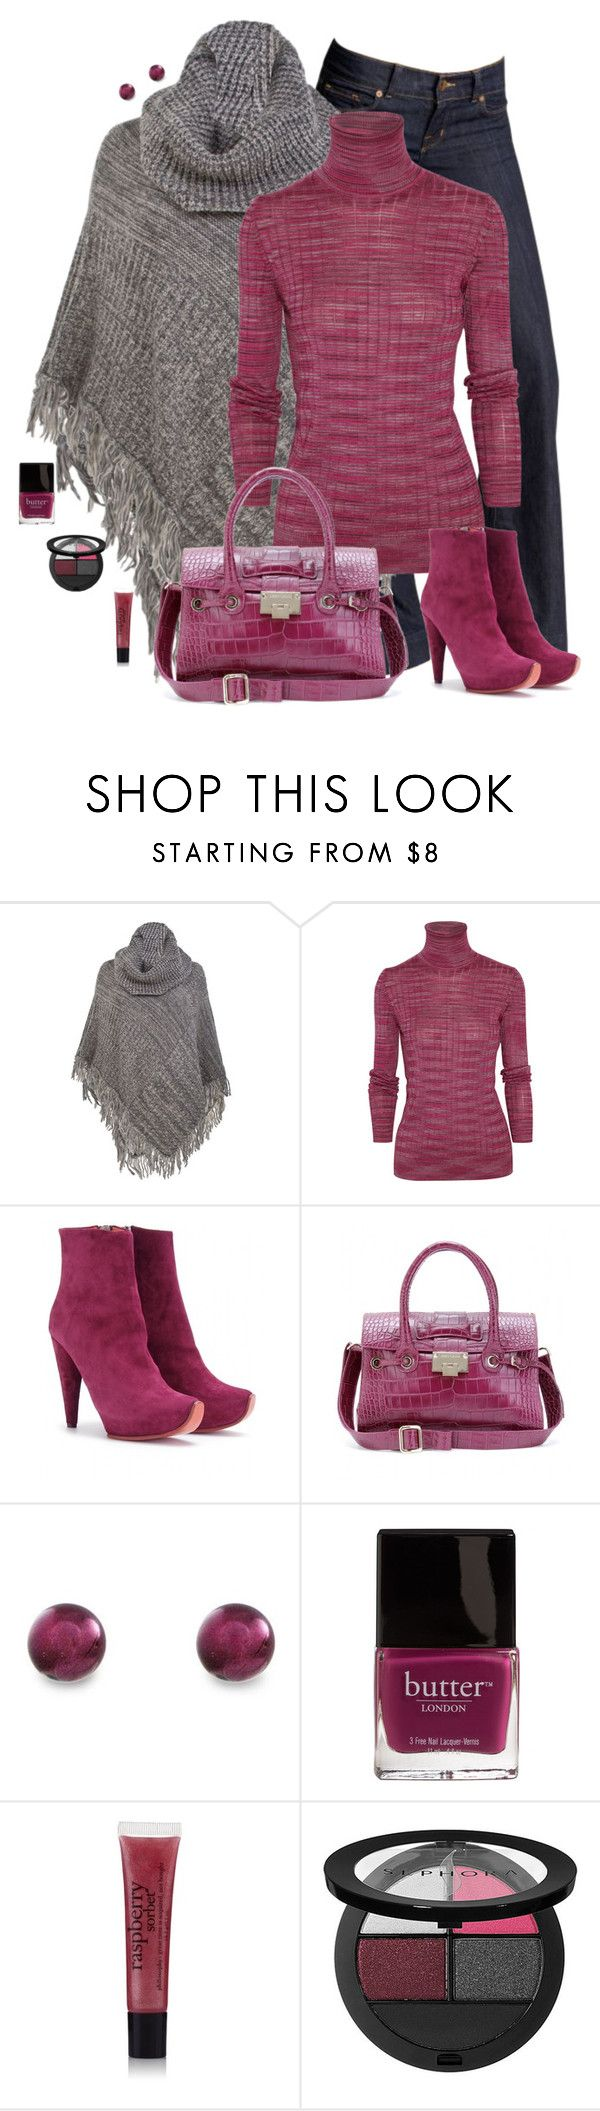 """""""Style This Poncho: Raspberry and Gray"""" by chrissykp ❤ liked on Polyvore featuring J Brand, Ann Harvey, Missoni, Acne Studios, Jimmy Choo, Butter London, philosophy, Sephora Collection, stripes and bootcut jeans"""